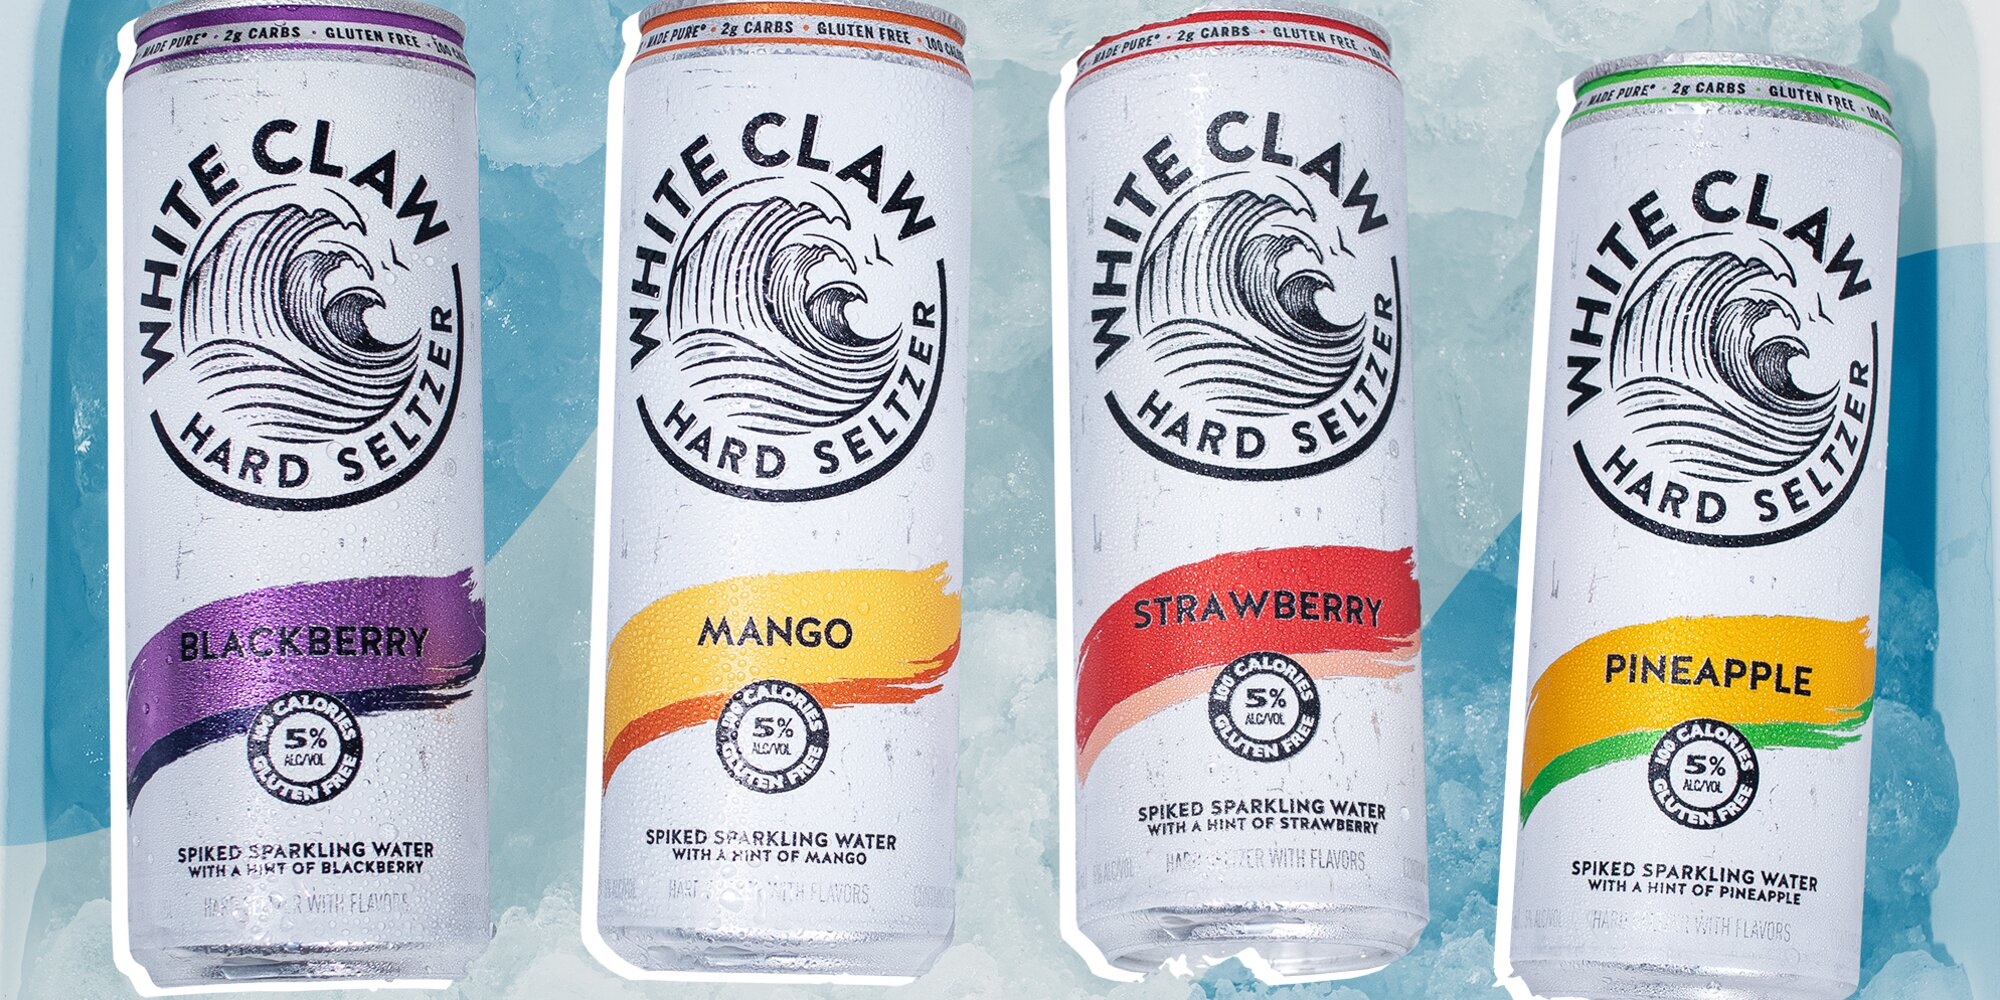 White Claw Is Launching 3 New Flavors and 2 Higher Alcohol Drinks, Just in Time for Summer